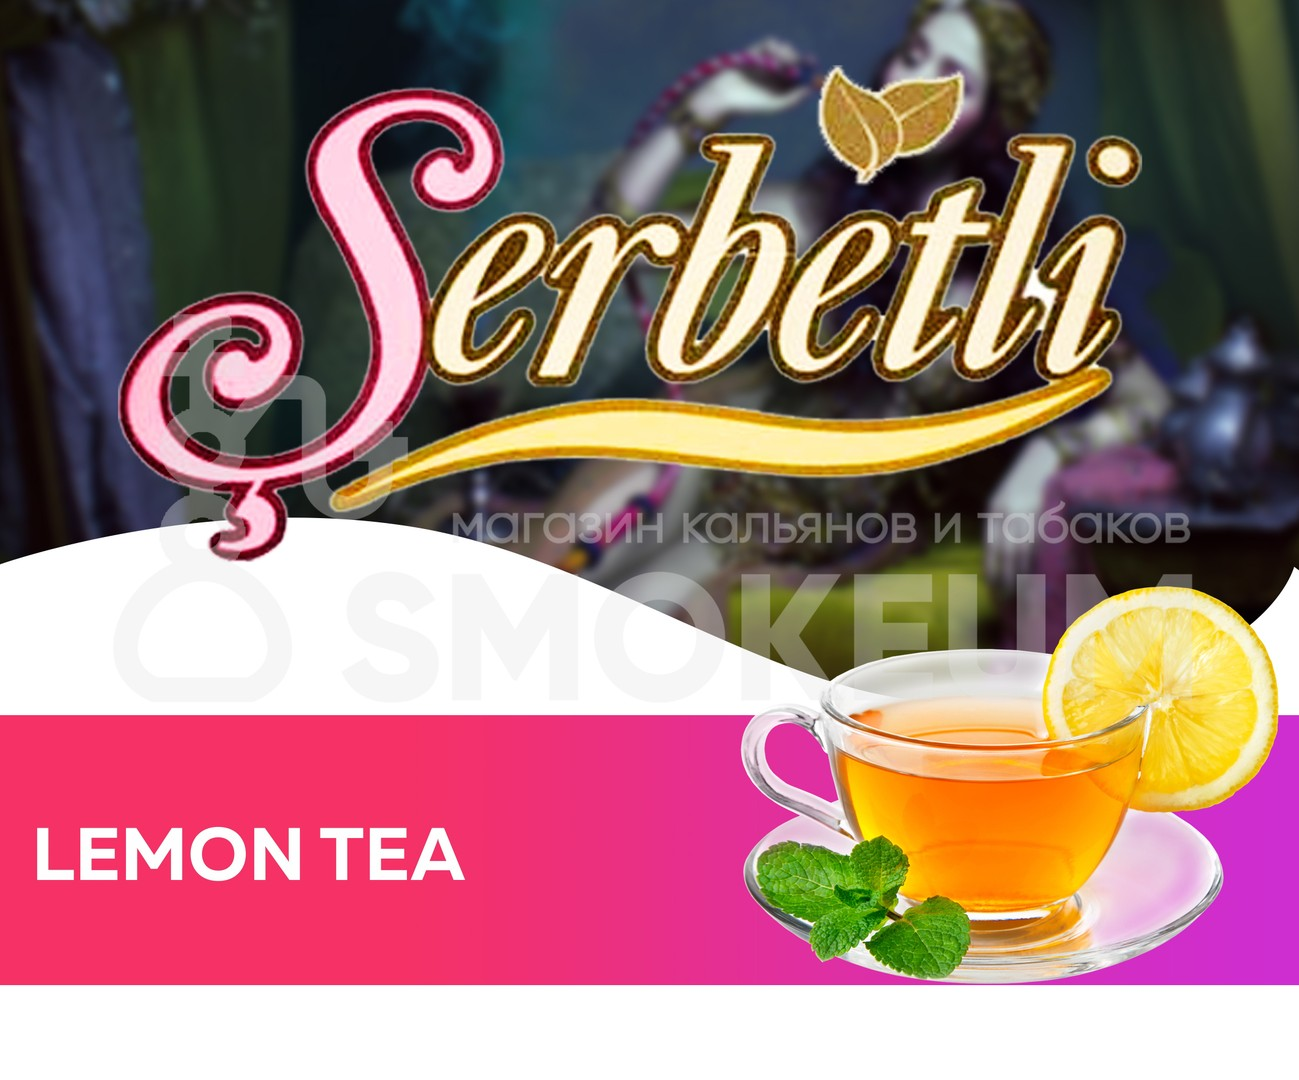 Табак Serbetli - Lemon Tea (Чай с лимоном) 50 гр